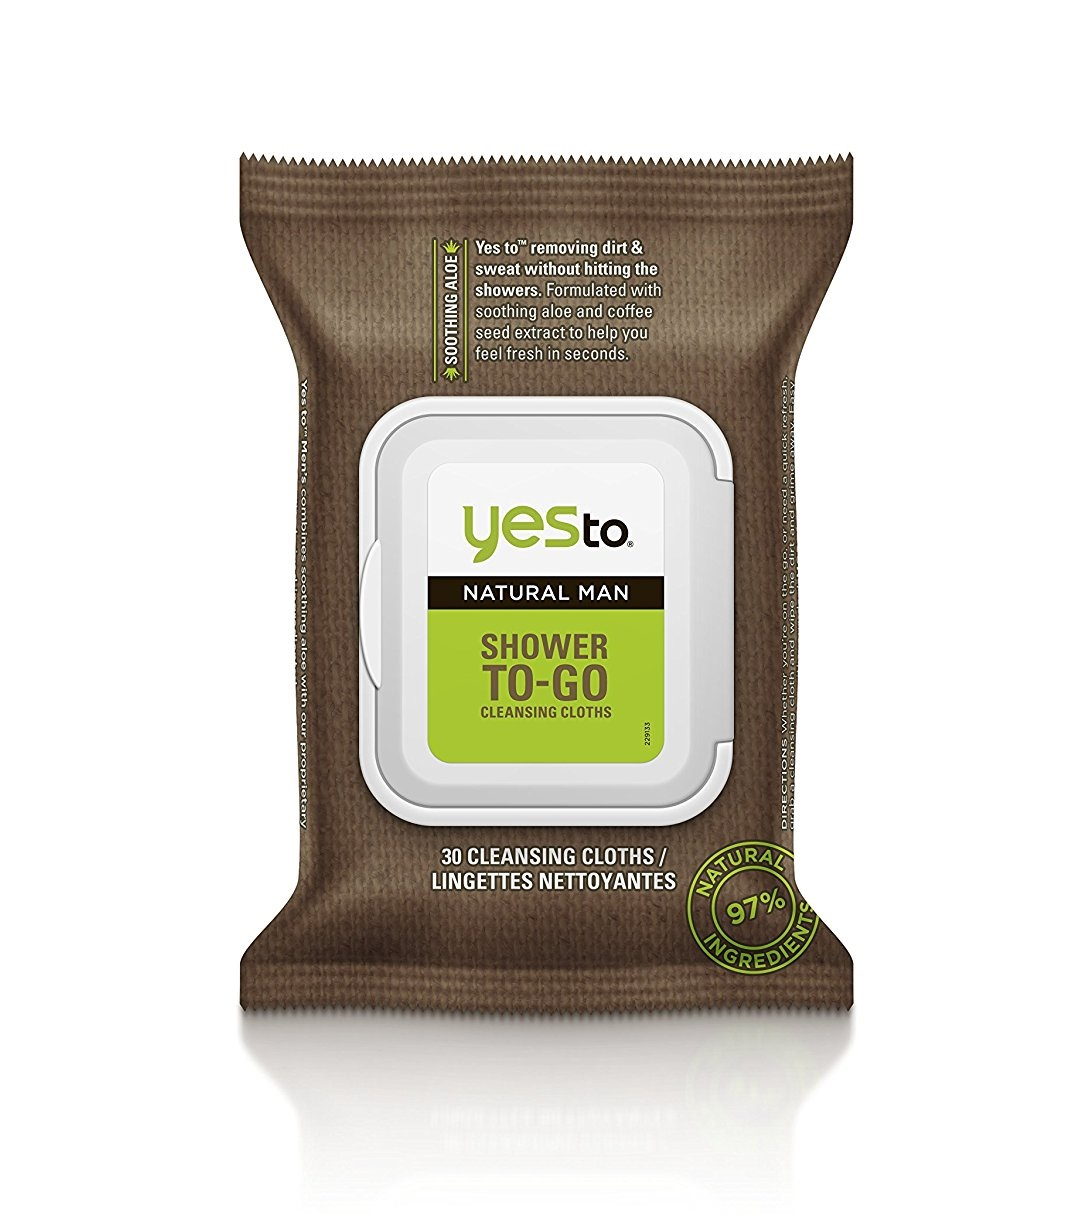 Yes To Natural Man Shower To-Go Cleansing Cloths, 30 ct - Walmart.com